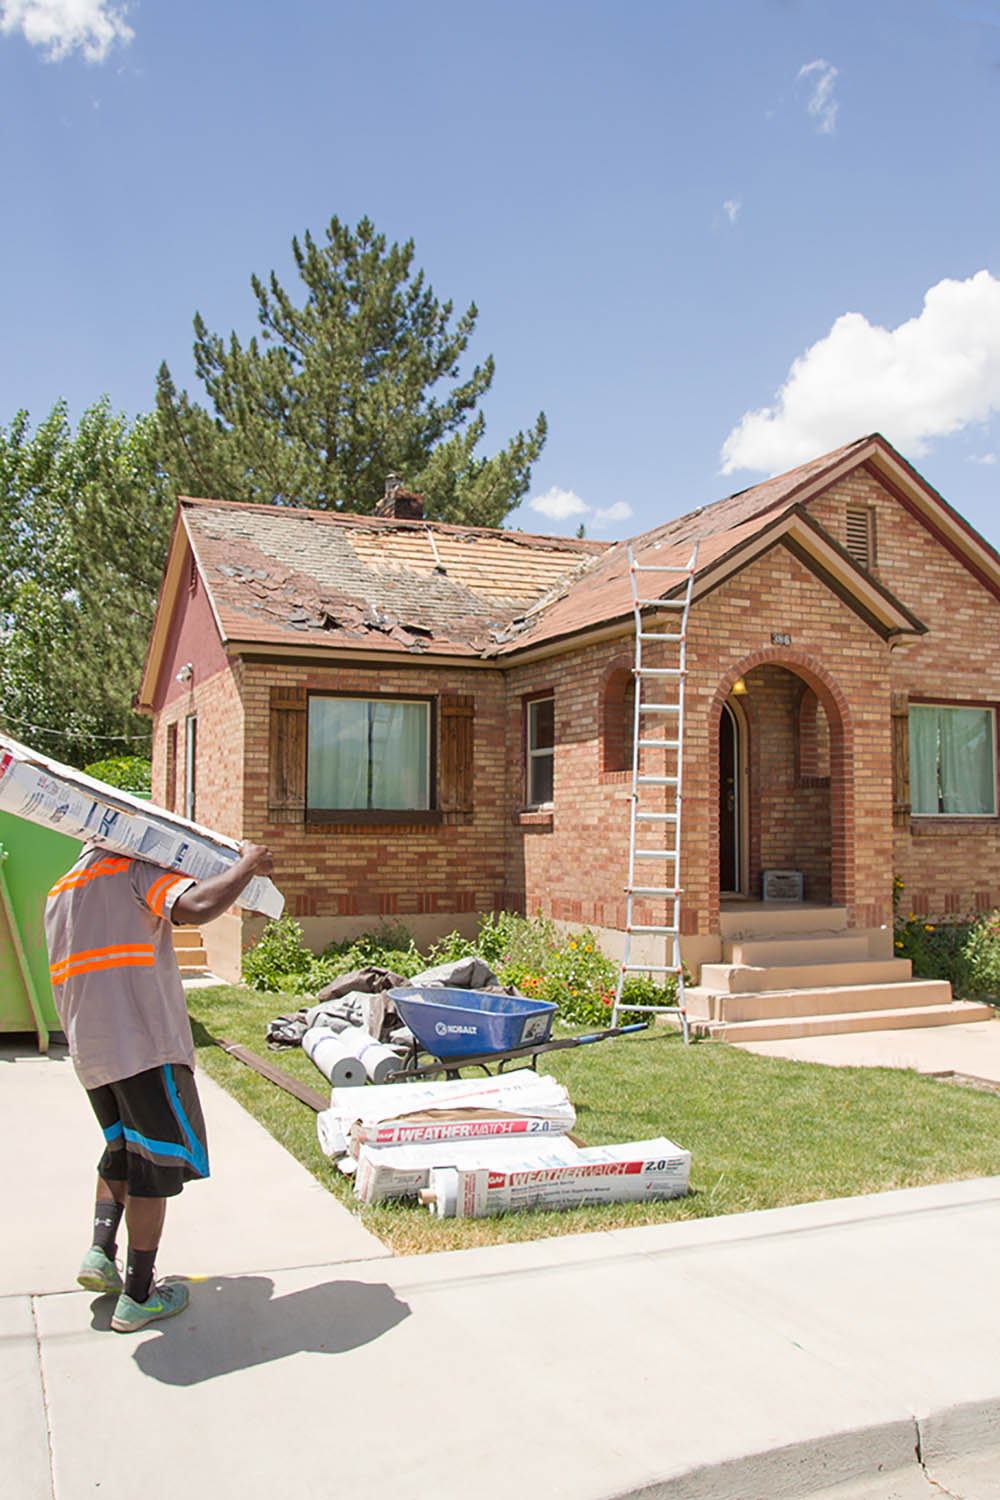 A man walks in front of a brick home having the roof replaced.